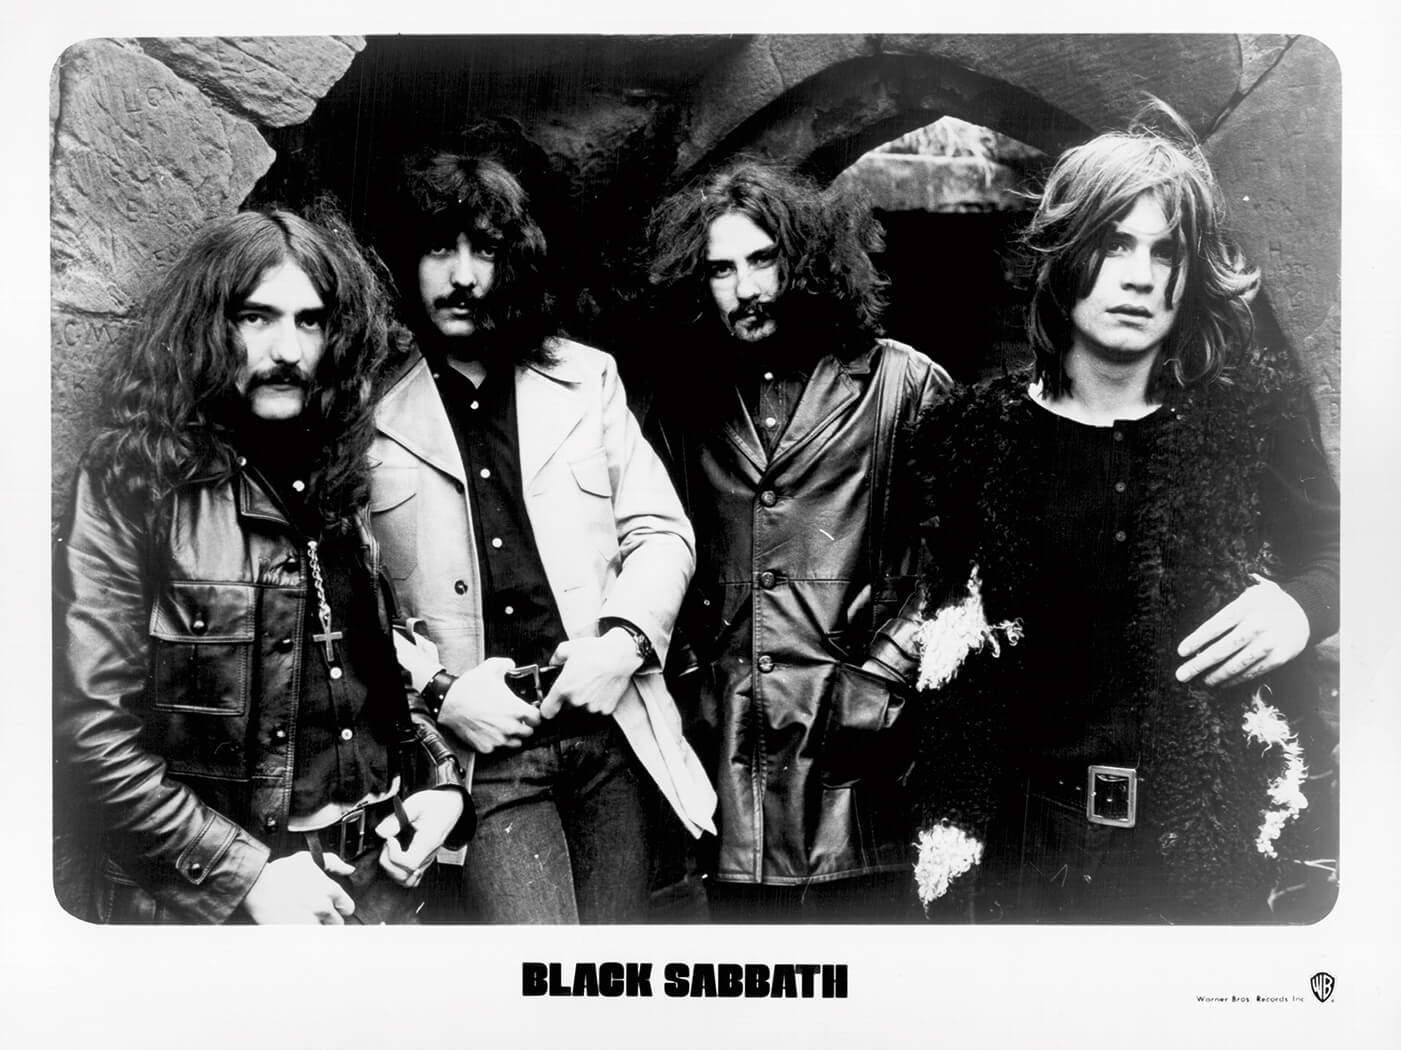 Black Sabbath 1970 Getty